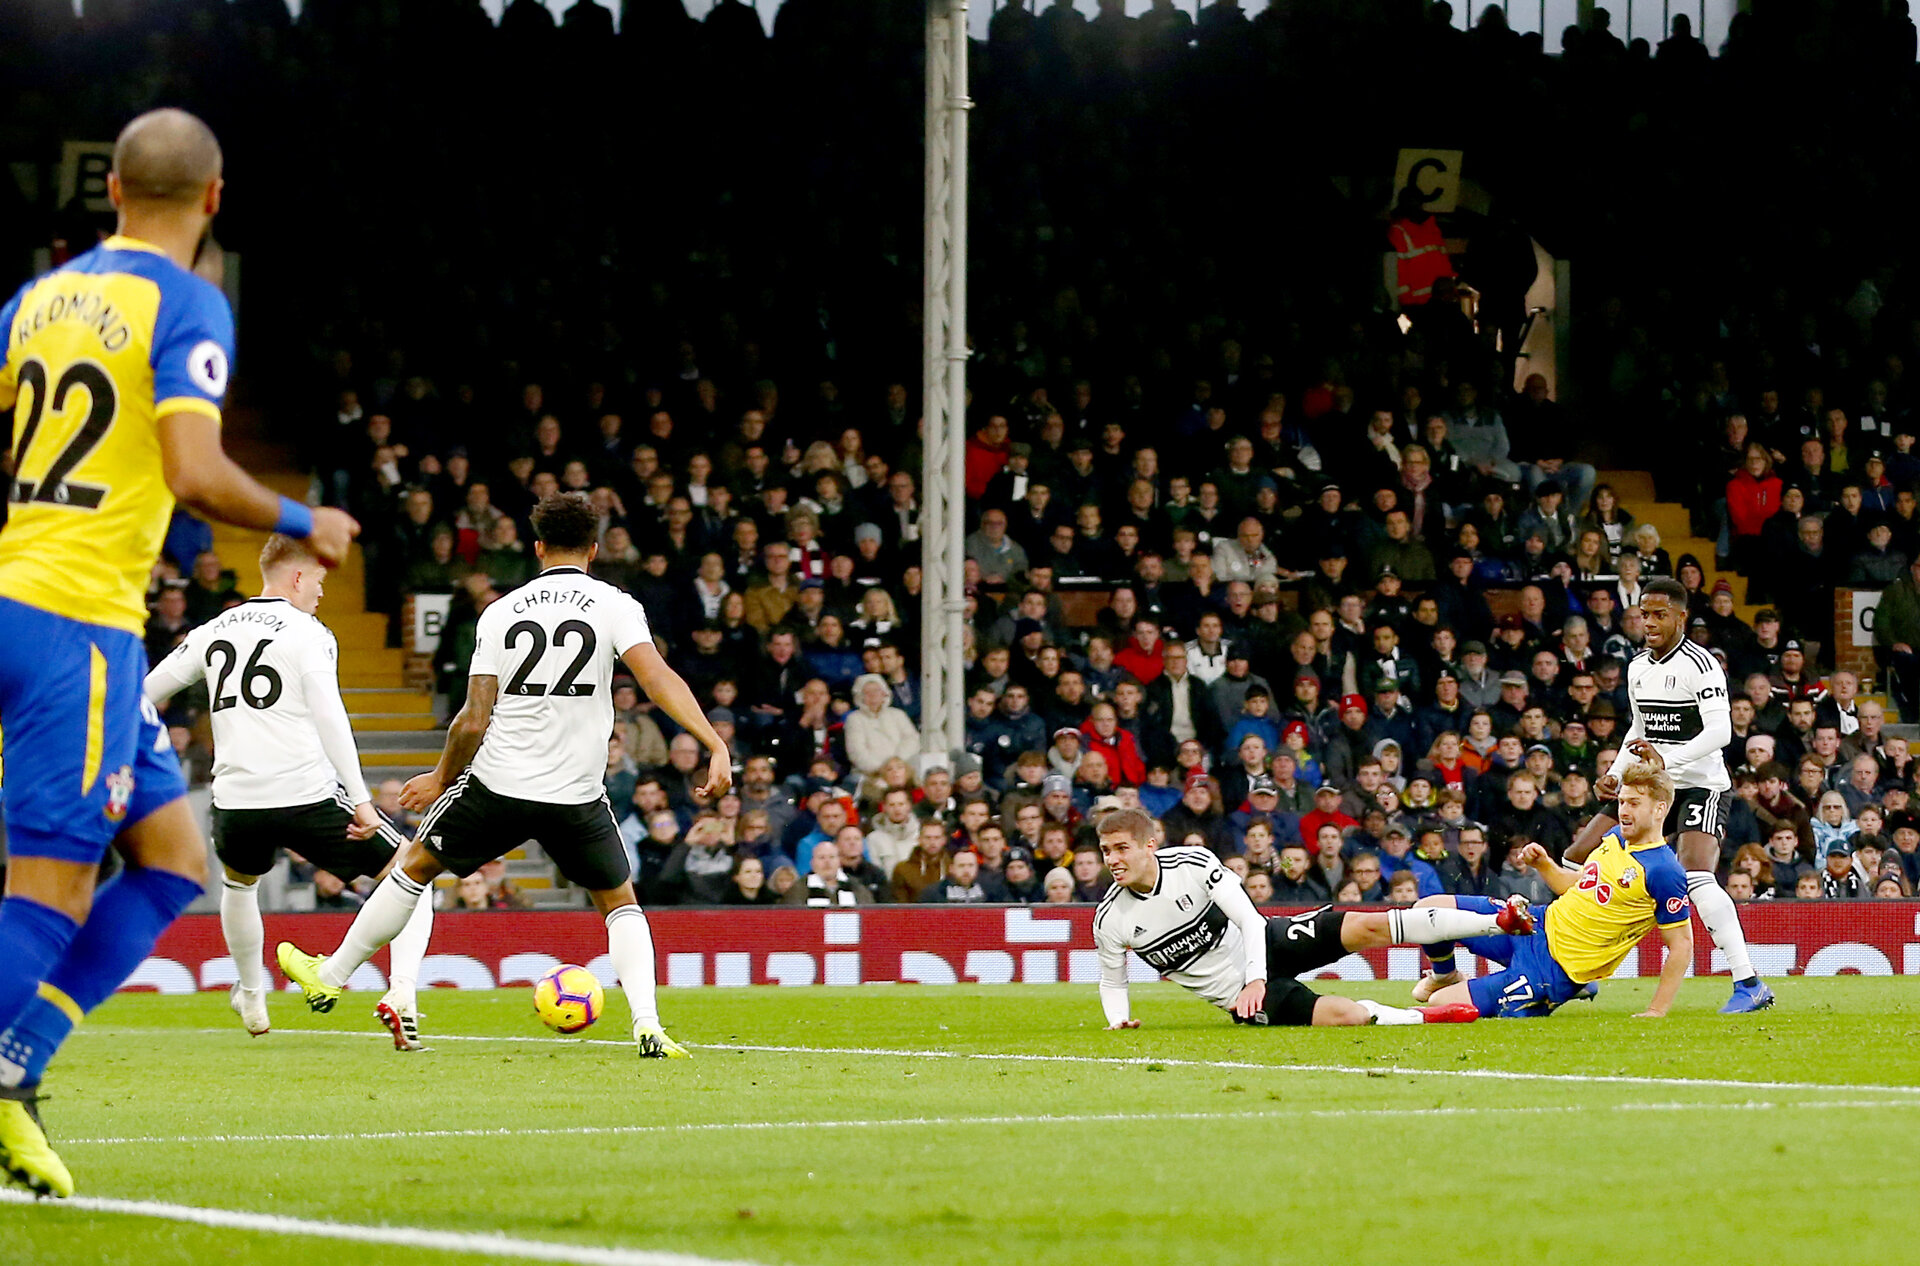 LONDON, ENGLAND - NOVEMBER 24: Stuart Armstrong of Southampton opens the scoring during the Premier League match between Fulham FC and Southampton FC at Craven Cottage on November 24, 2018 in London, United Kingdom. (Photo by Matt Watson/Southampton FC via Getty Images)